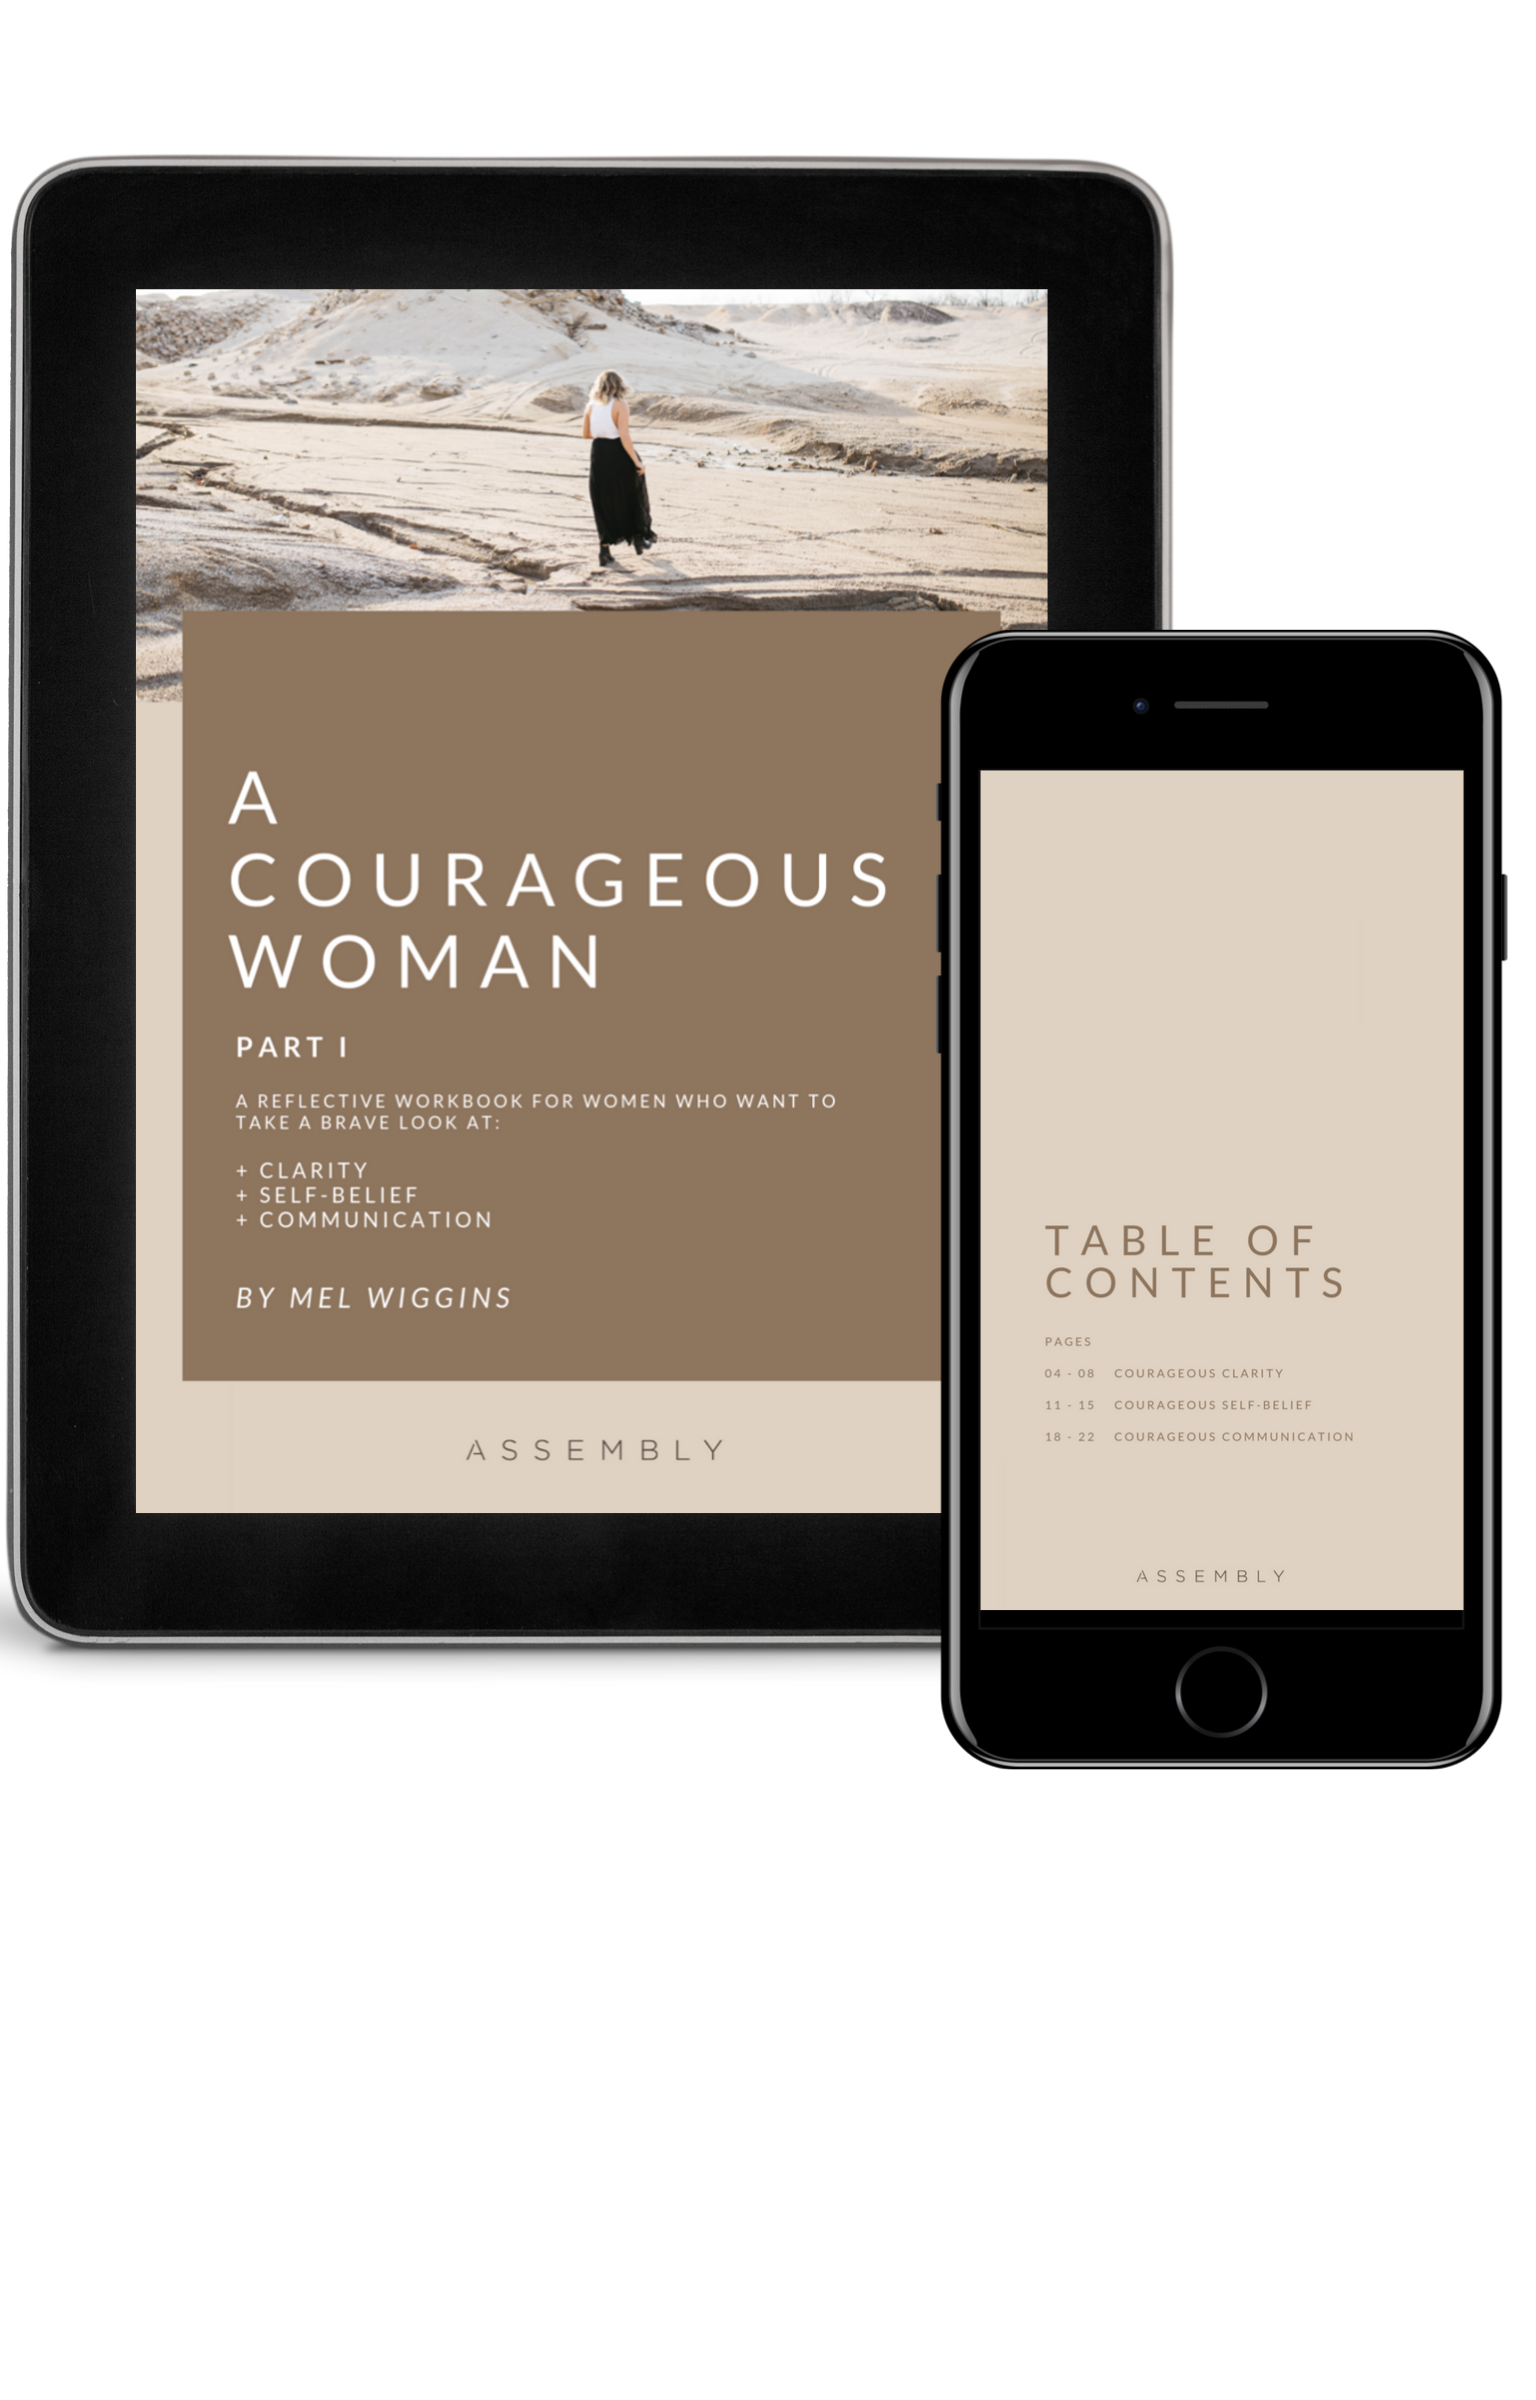 A Courageous Woman Workbook Images1.png